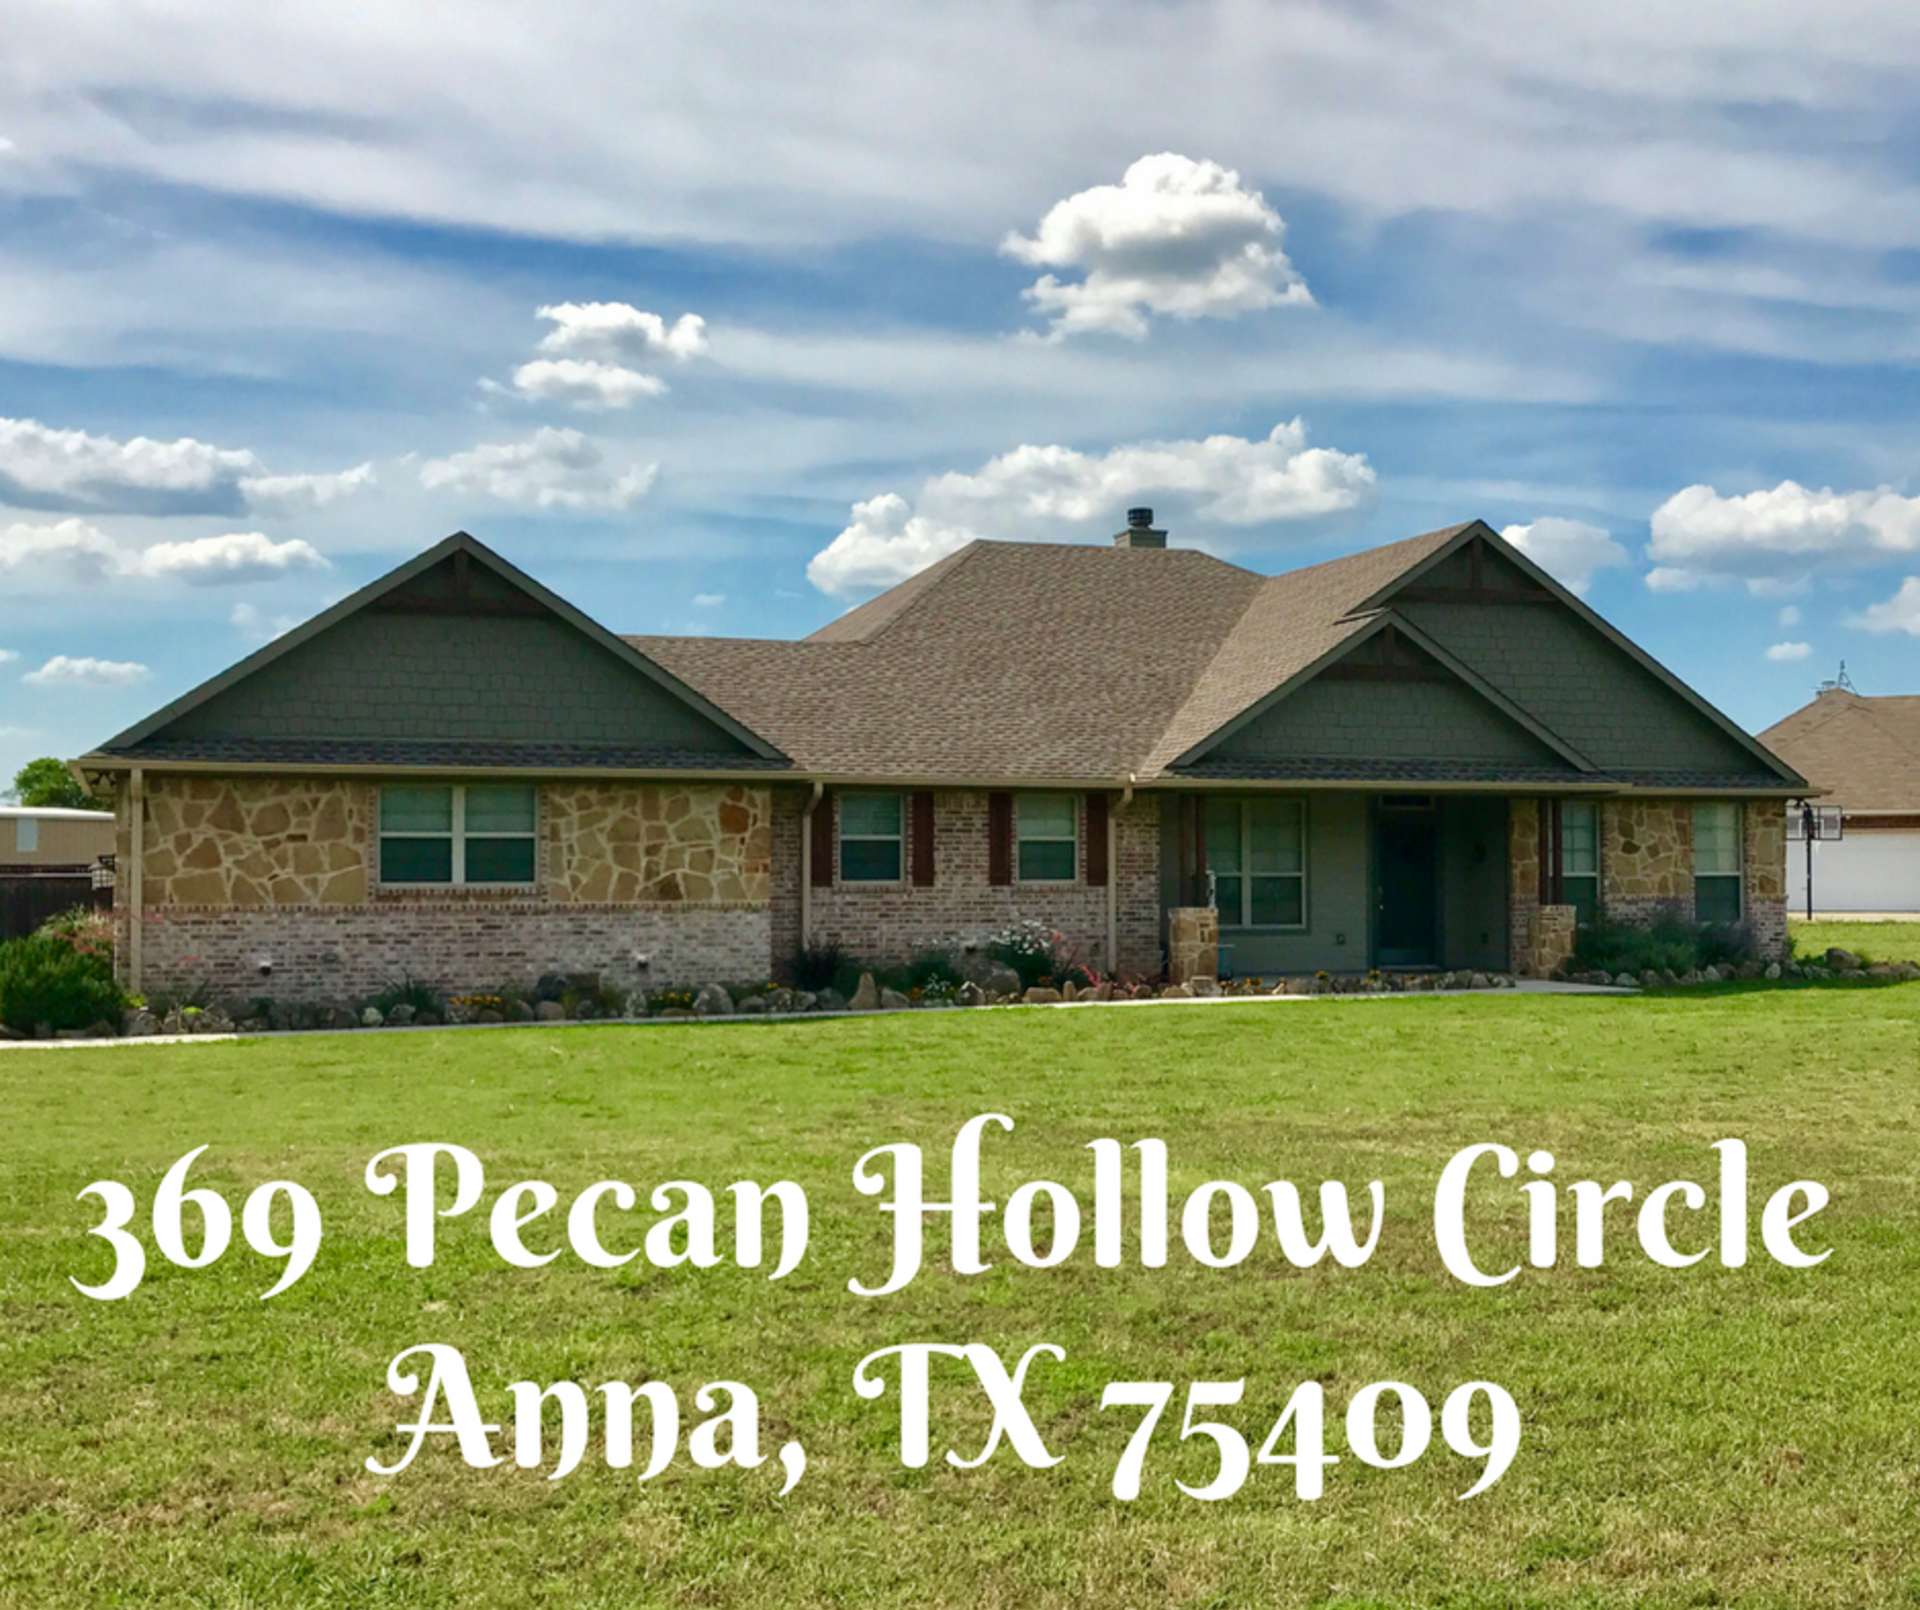 Tour 369 Pecan Hollow Circle in Anna! Video in link!